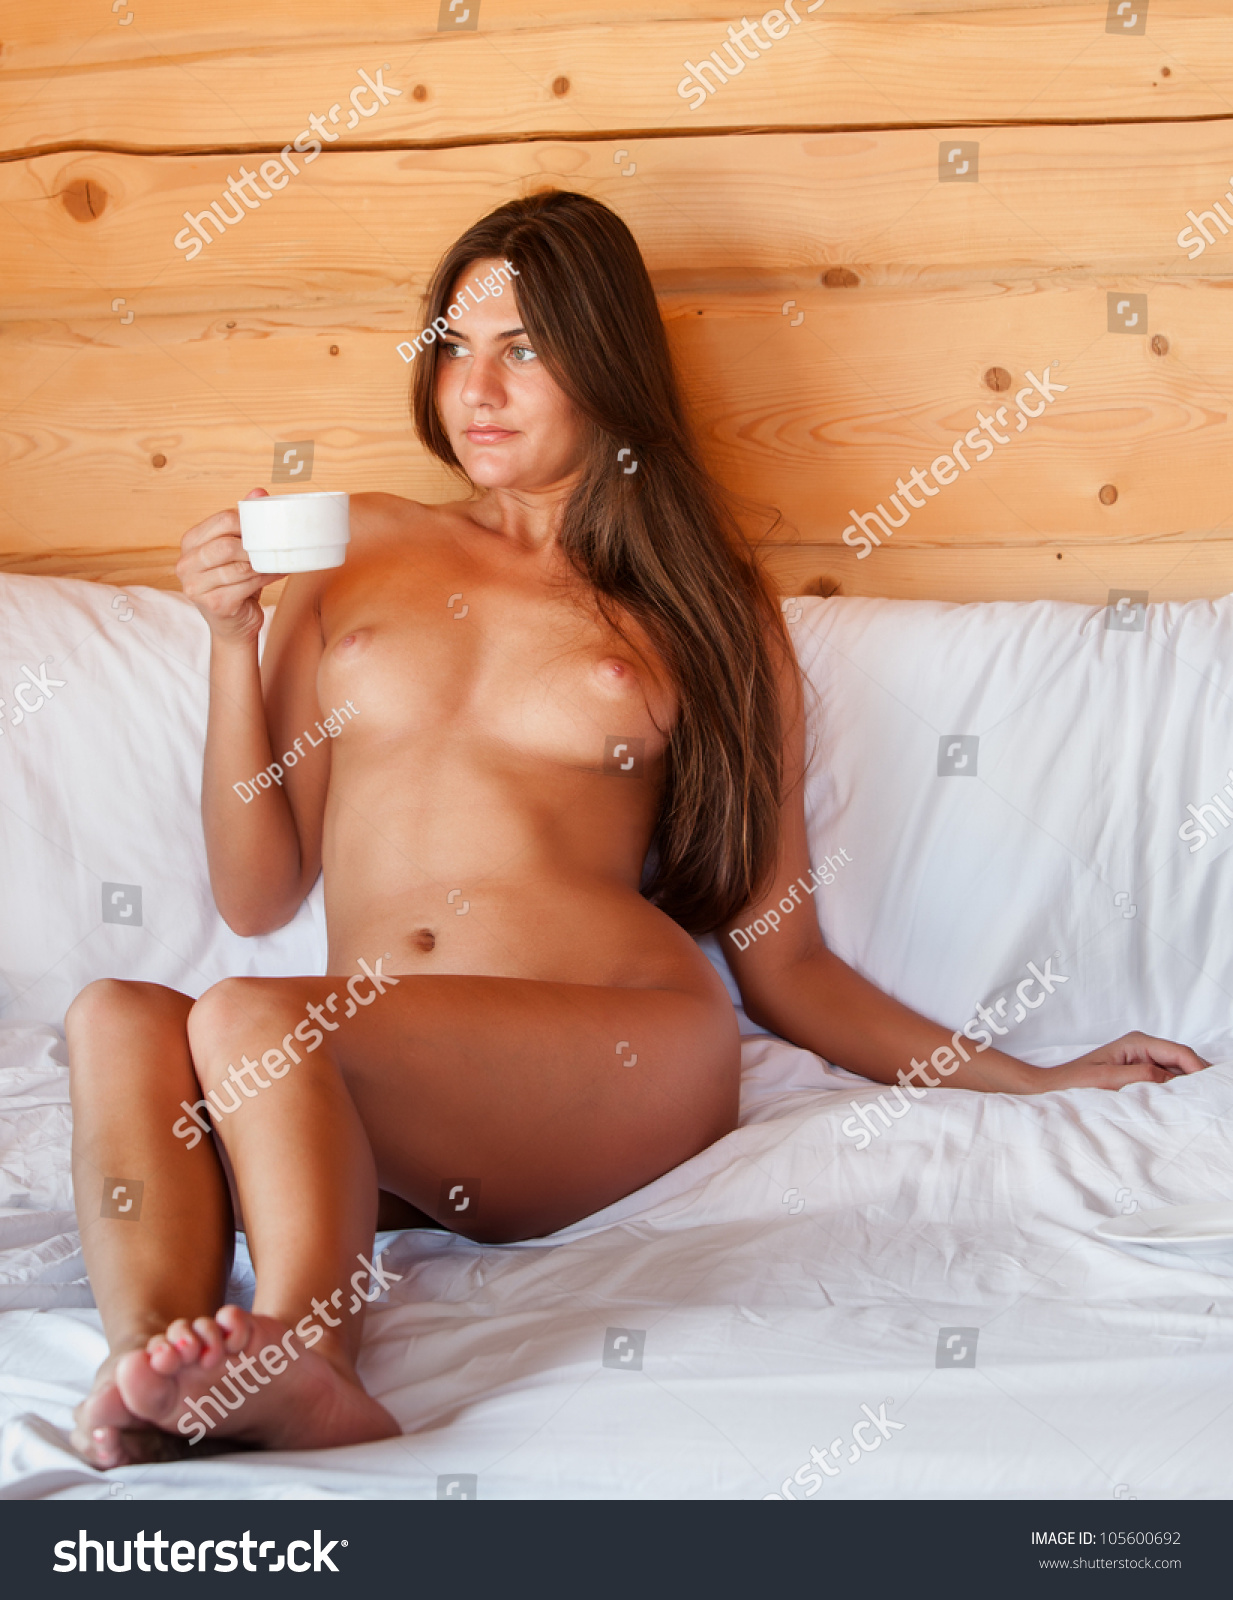 naked women drinking coffee having sex